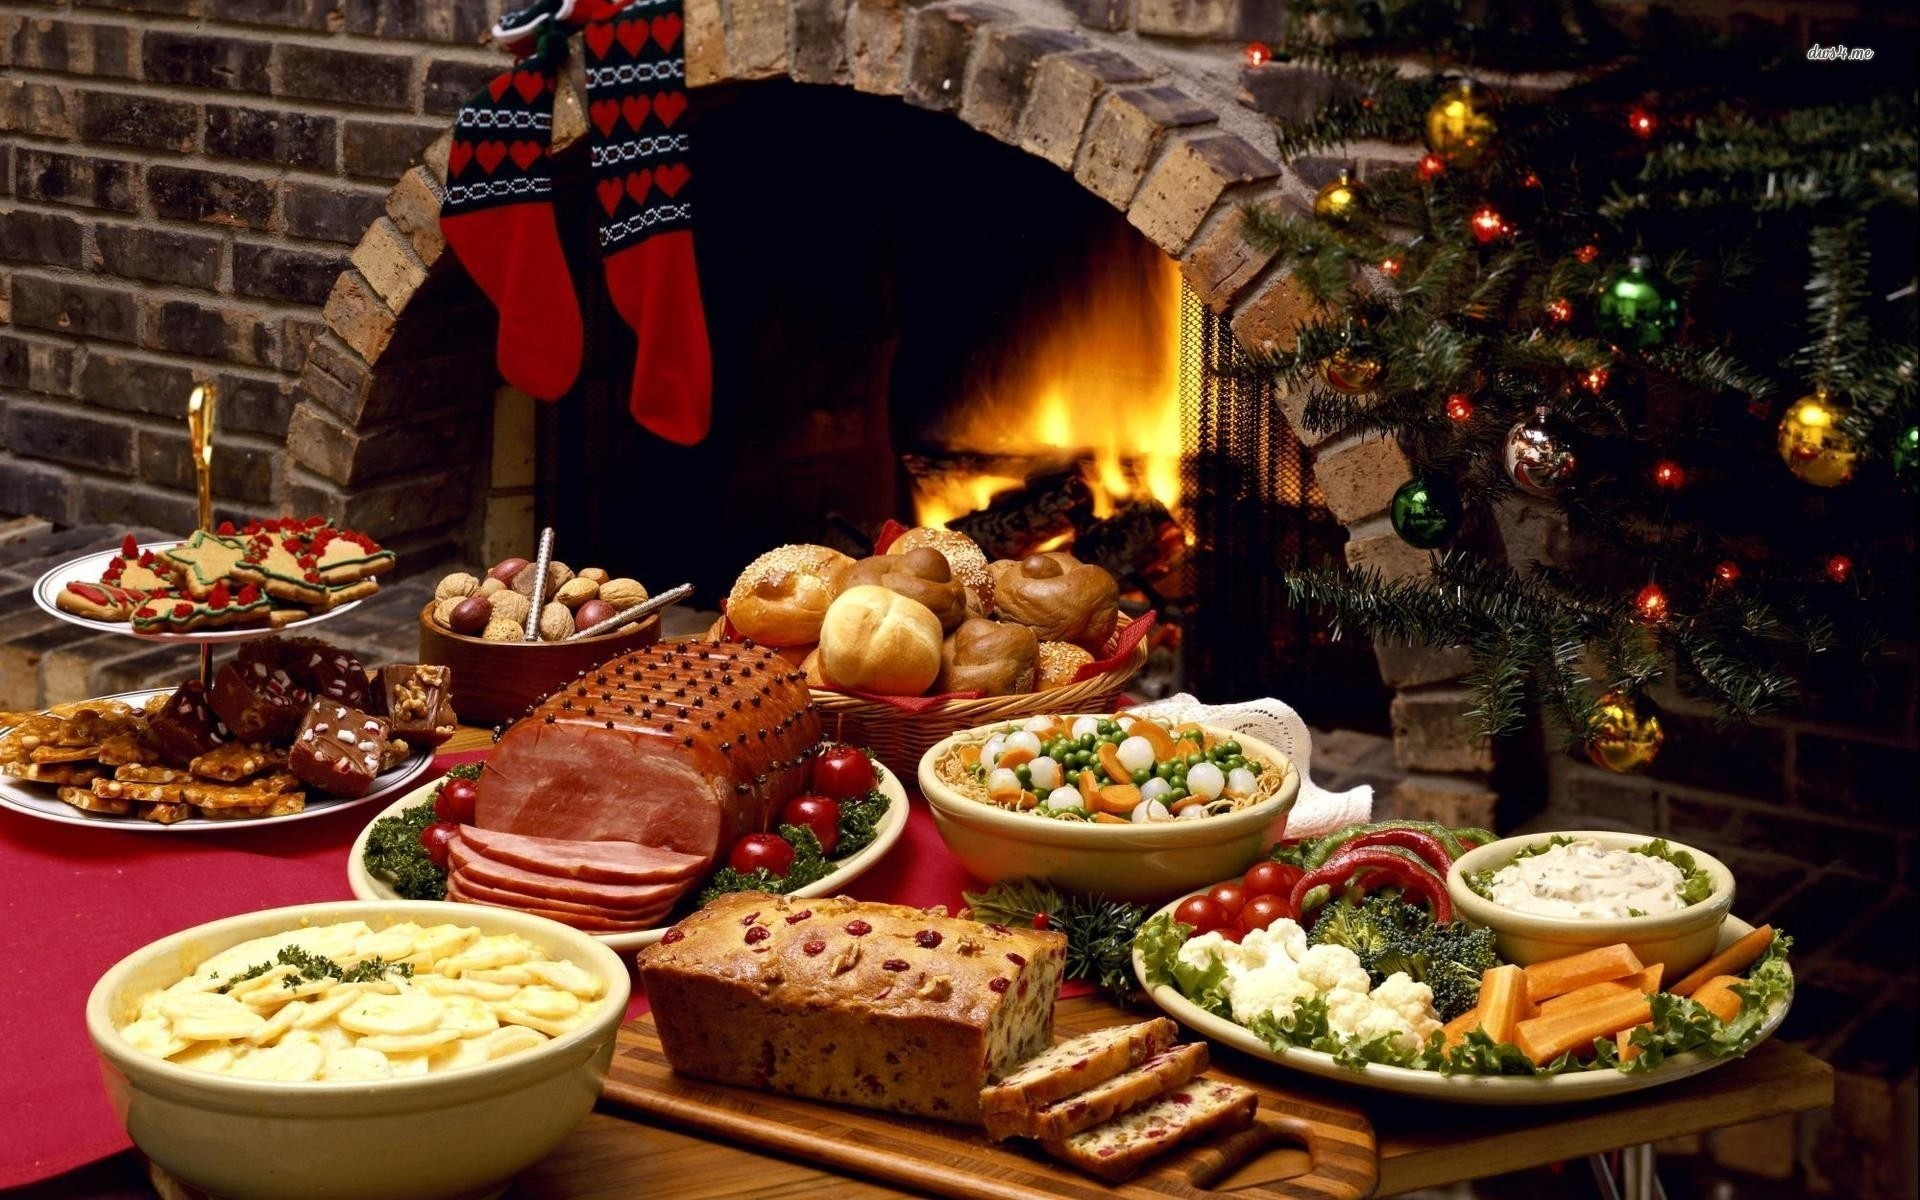 area restairamts are offering special christmas eve and christmas day dinners so you can spend less